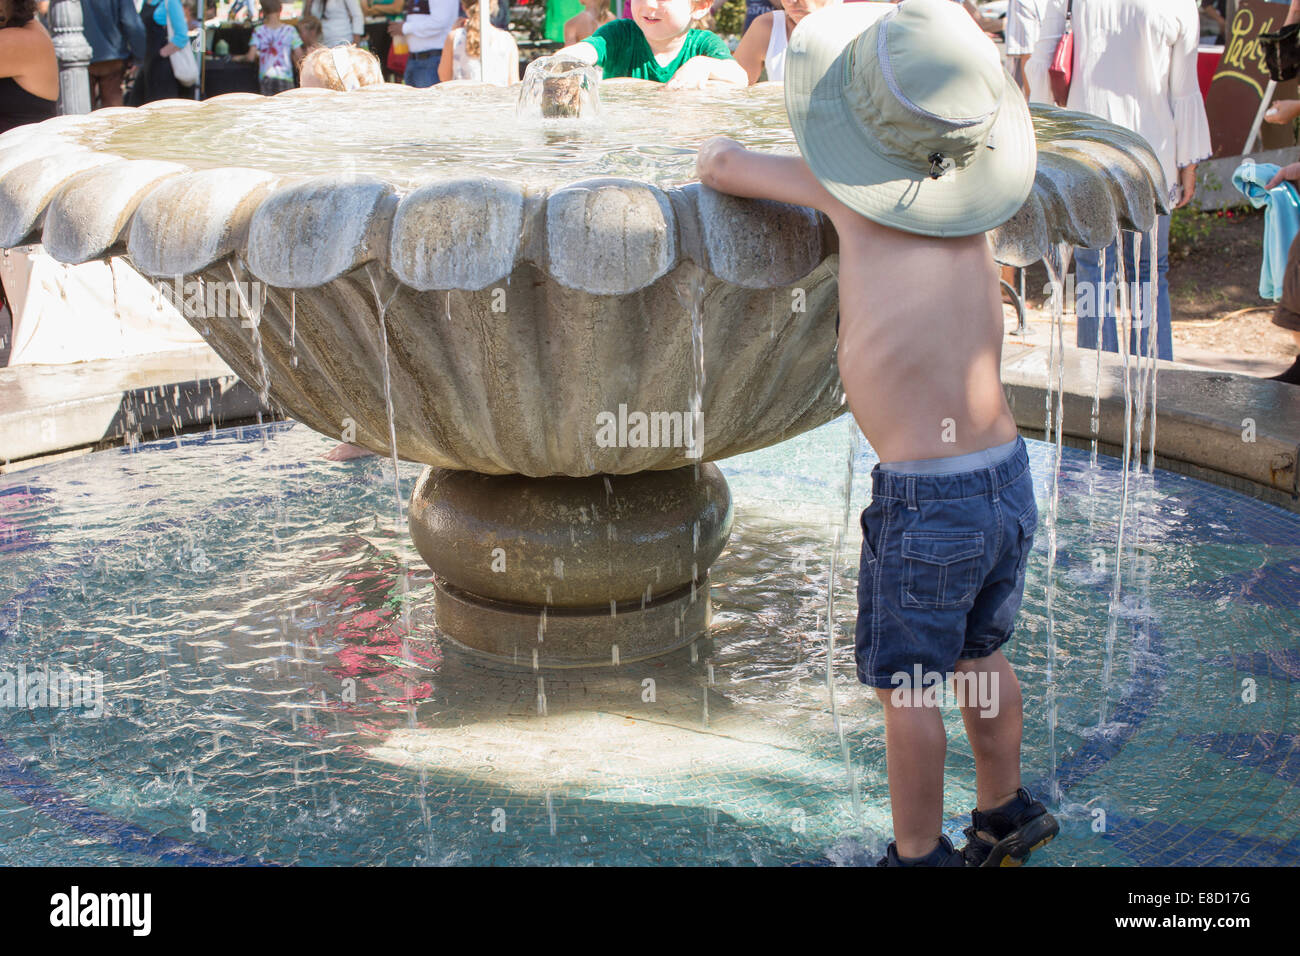 Child playing with water in fountain on a hot day at Sebastopol farmer's market, Sonoma County, California - Stock Image